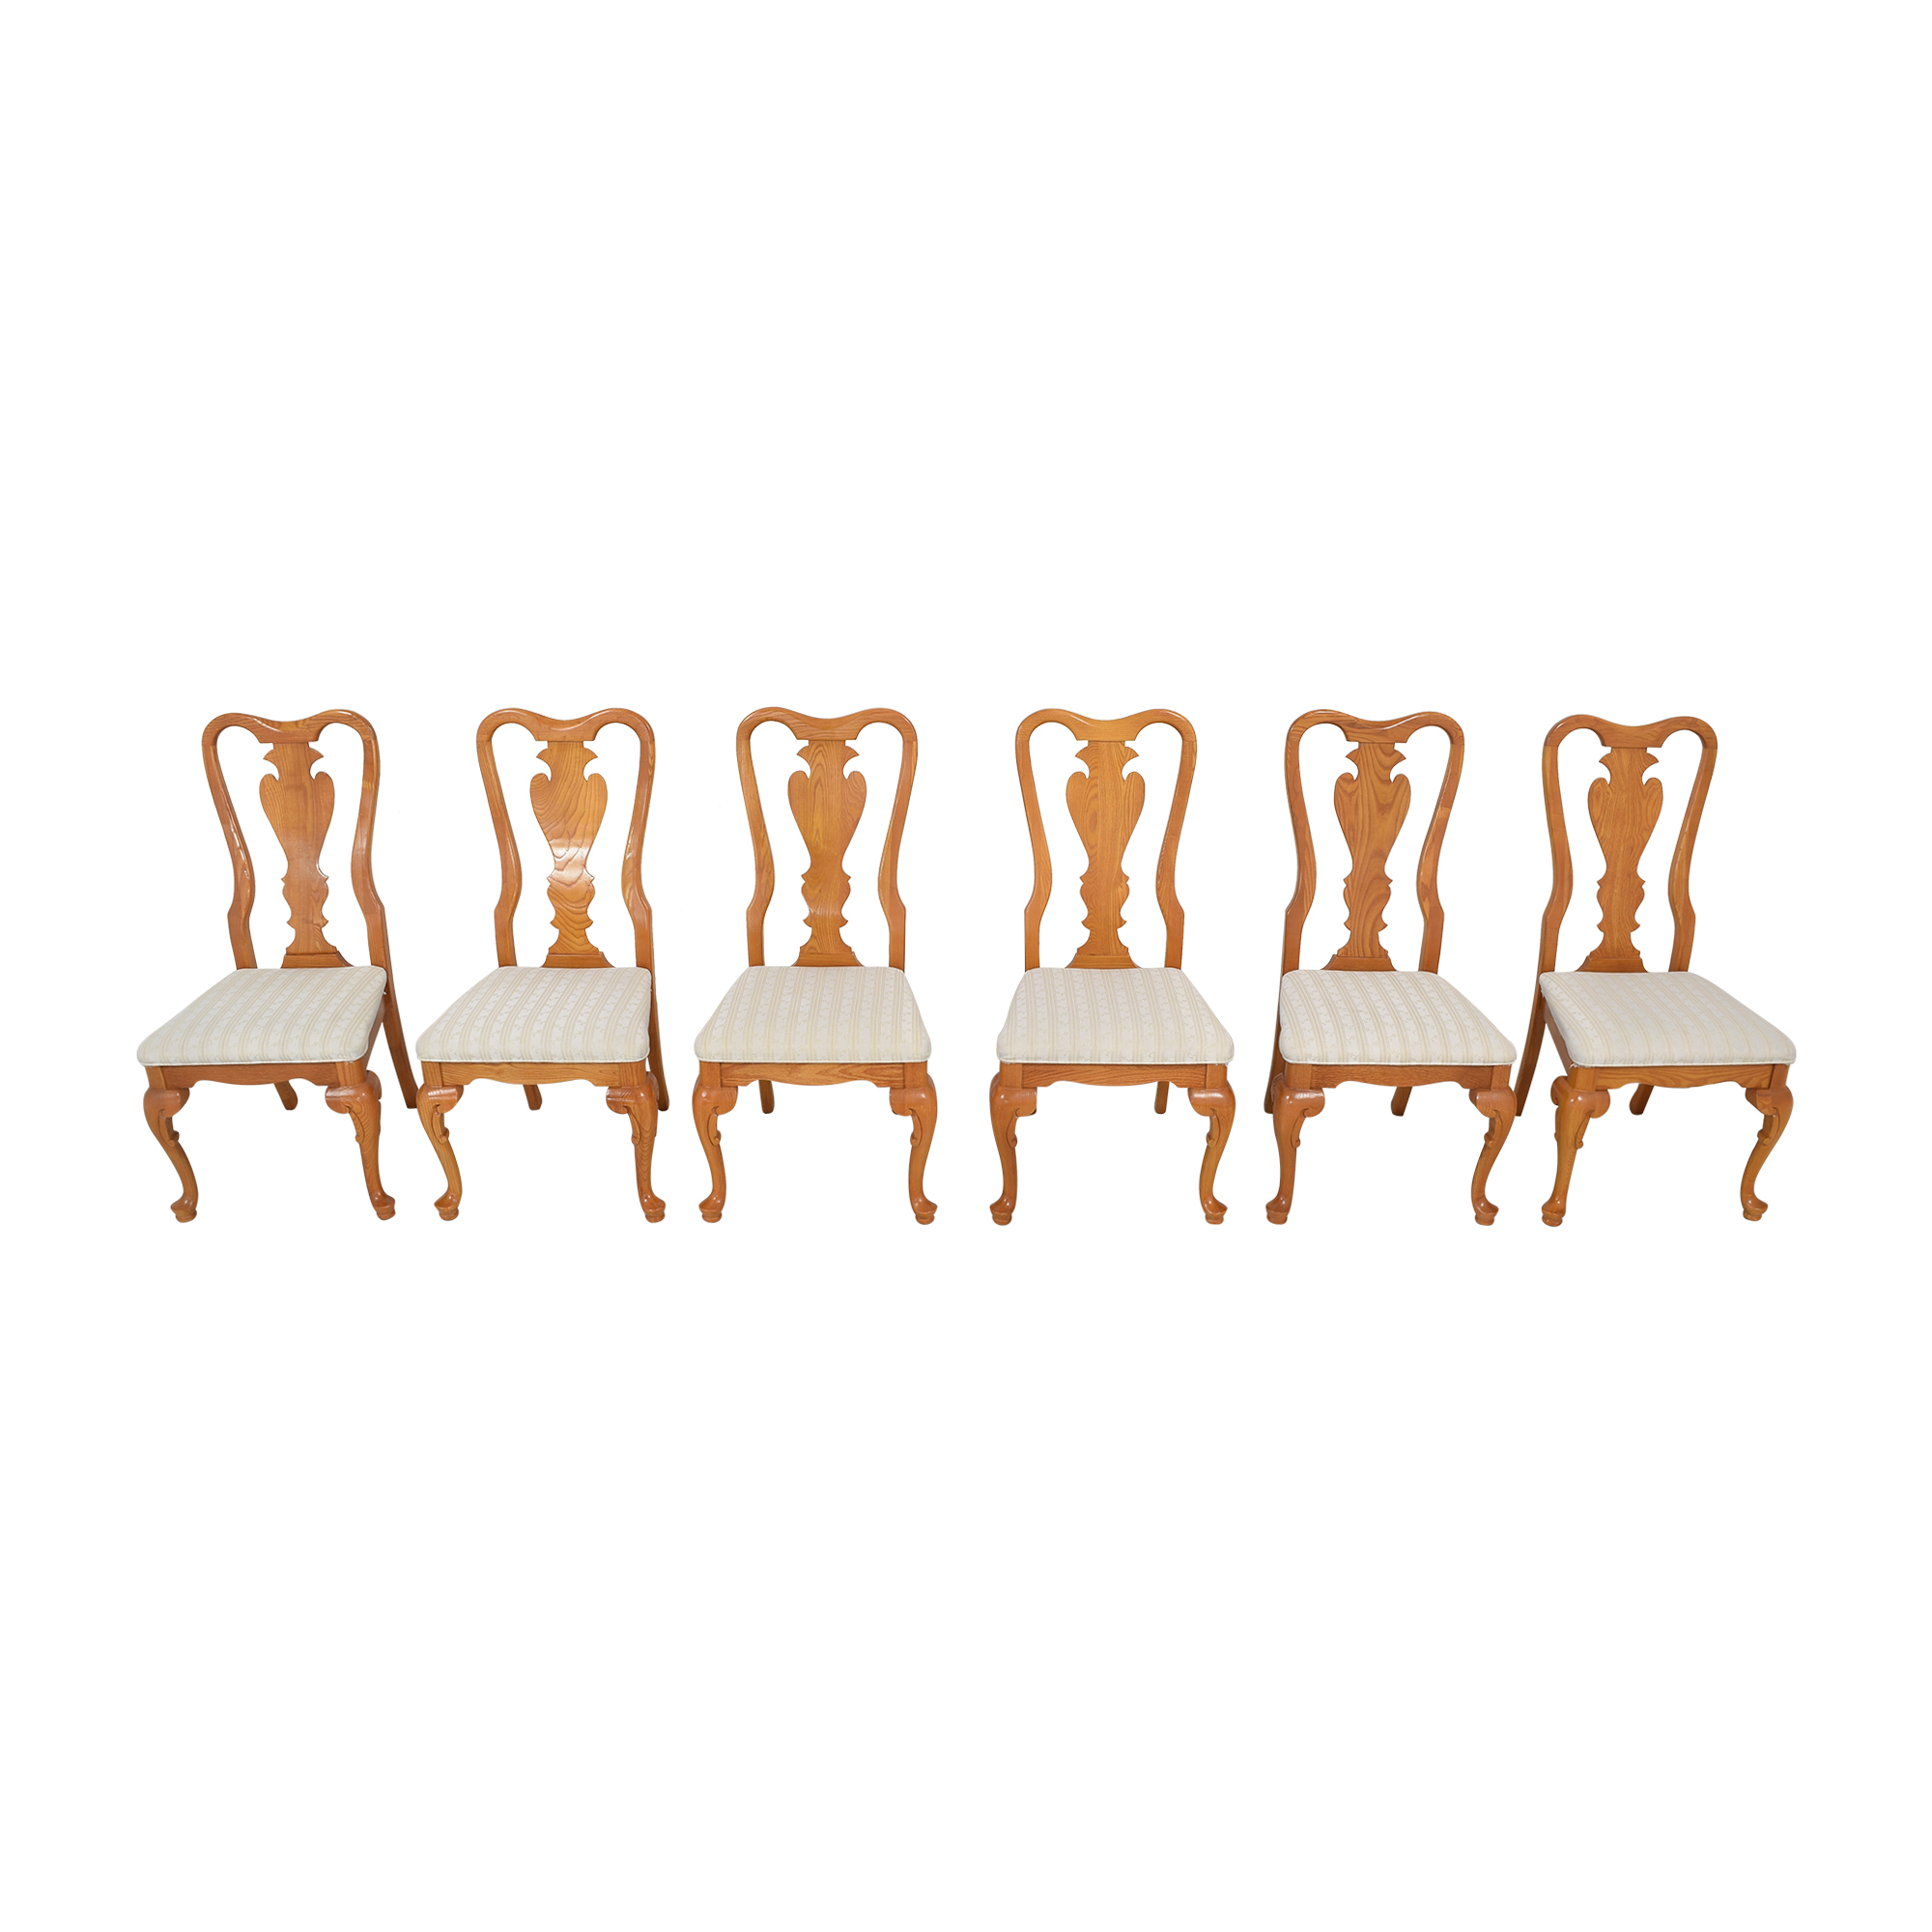 Sumter Cabinet Co. Sumter Cabinet Company Dining Chairs for sale